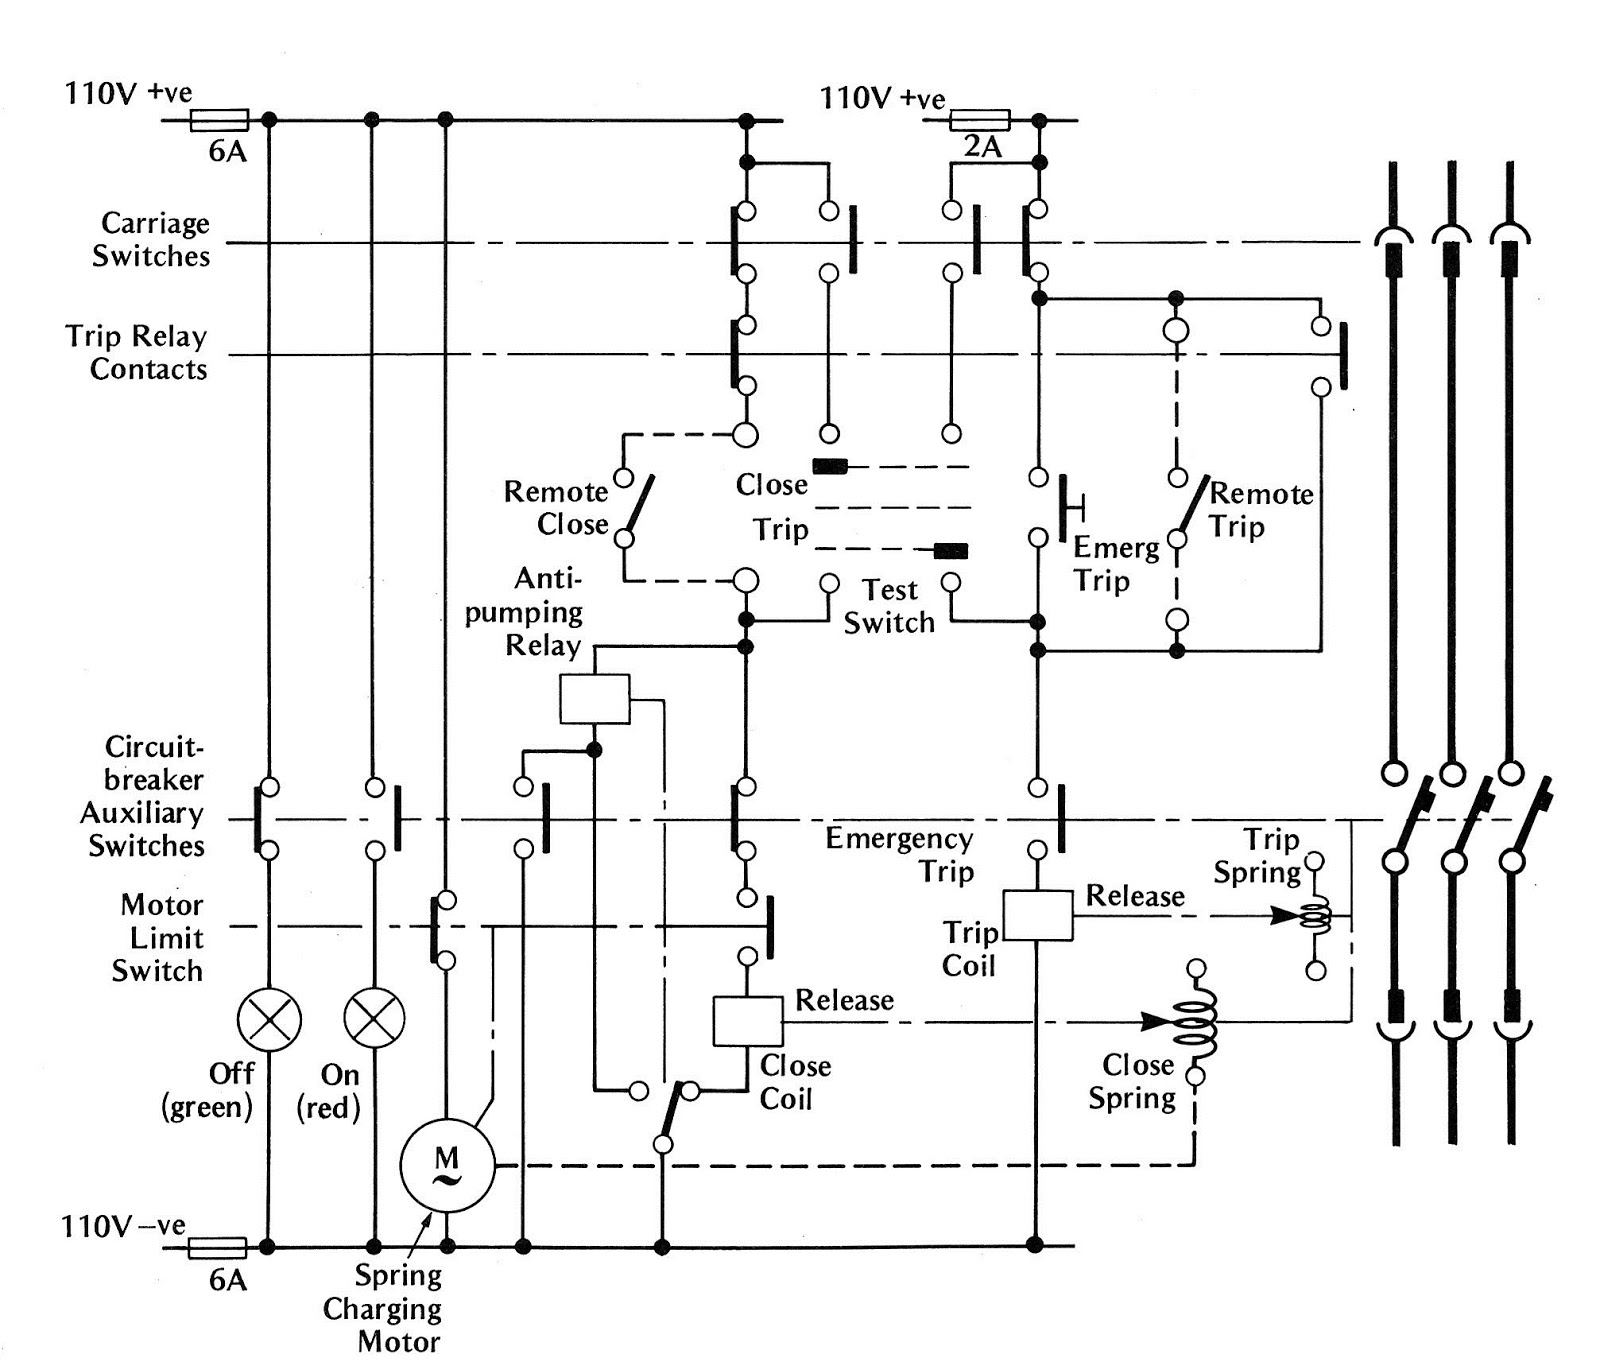 hight resolution of electrical schematic diagram symbols electrical wiring schematic symbols circuit schematic symbols schematic symbols for circuit wiring